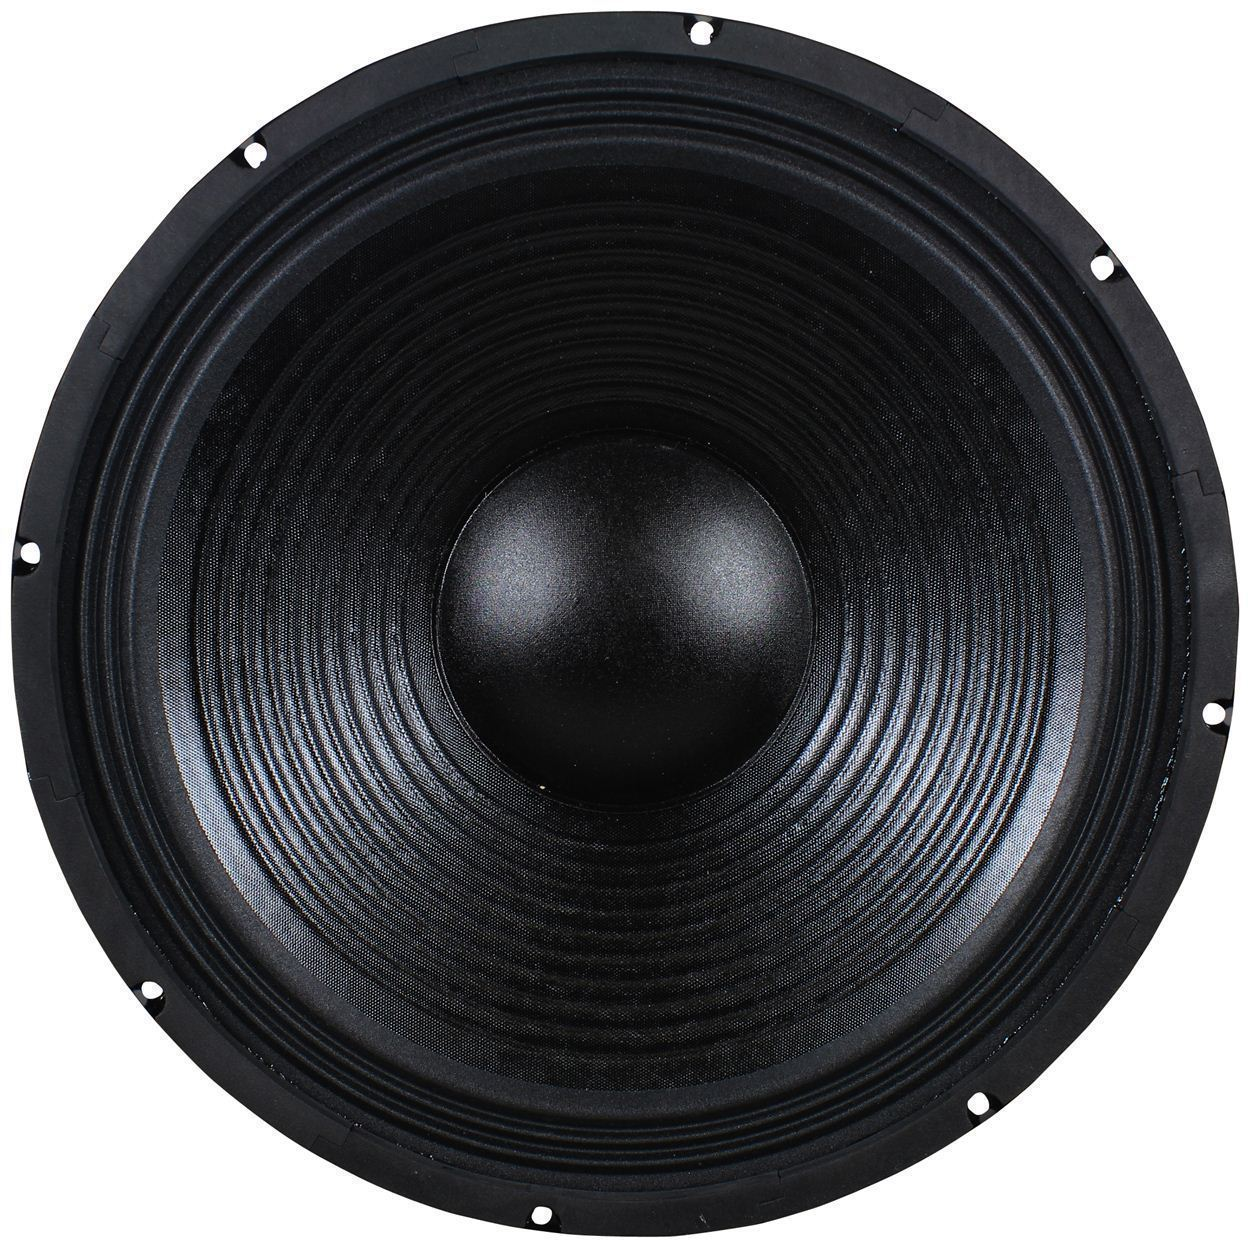 "Technical Pro WF18.1 18"" 2000W 8-Ohm DJ/Pro Audio Replacement Raw Subwoofer/Sub"